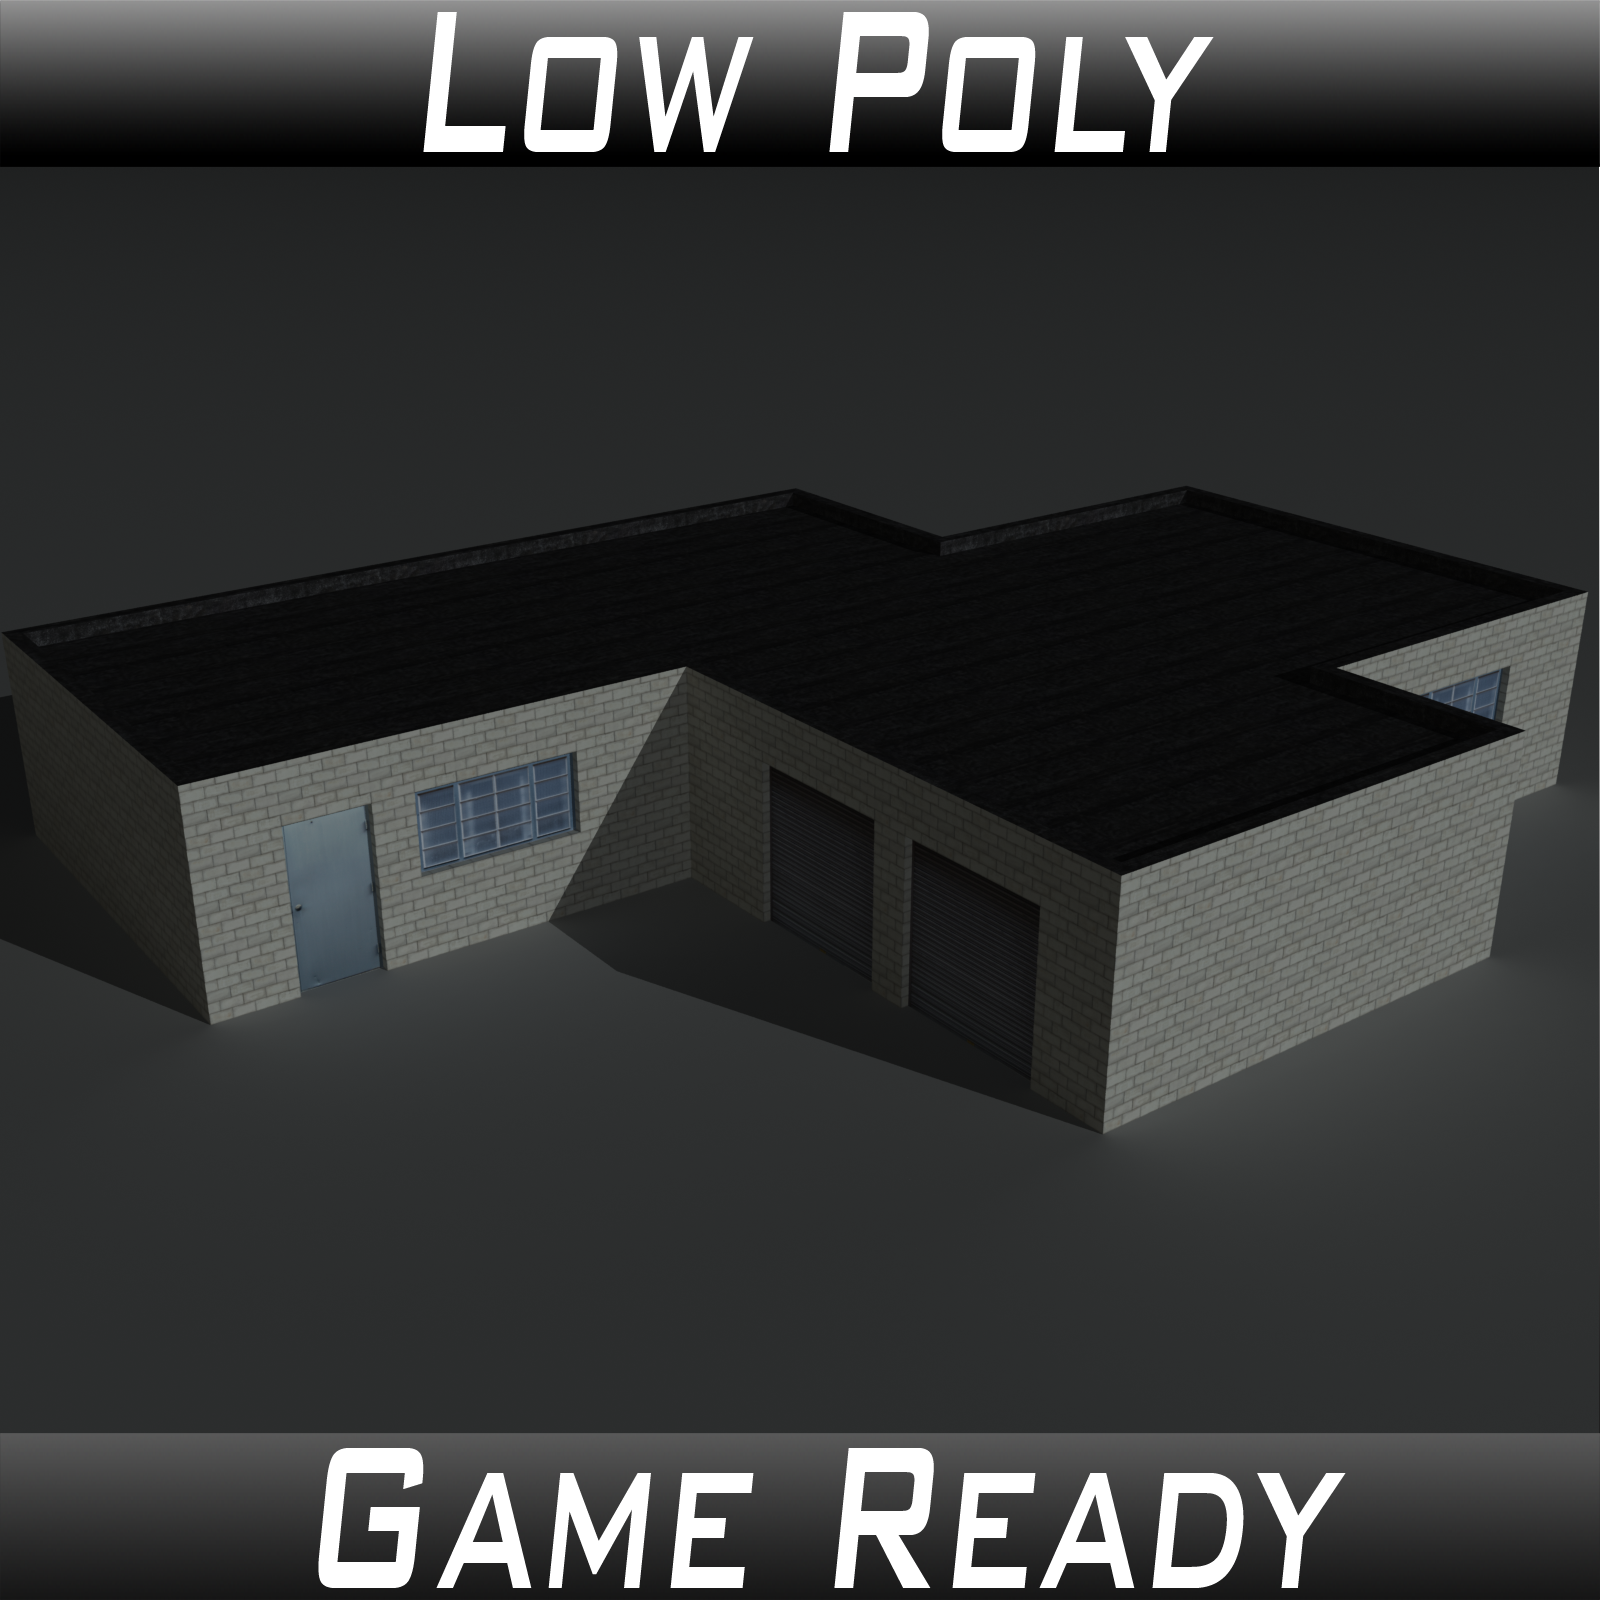 Low Poly Factory Building 1 - Extended Licence by 3dlands